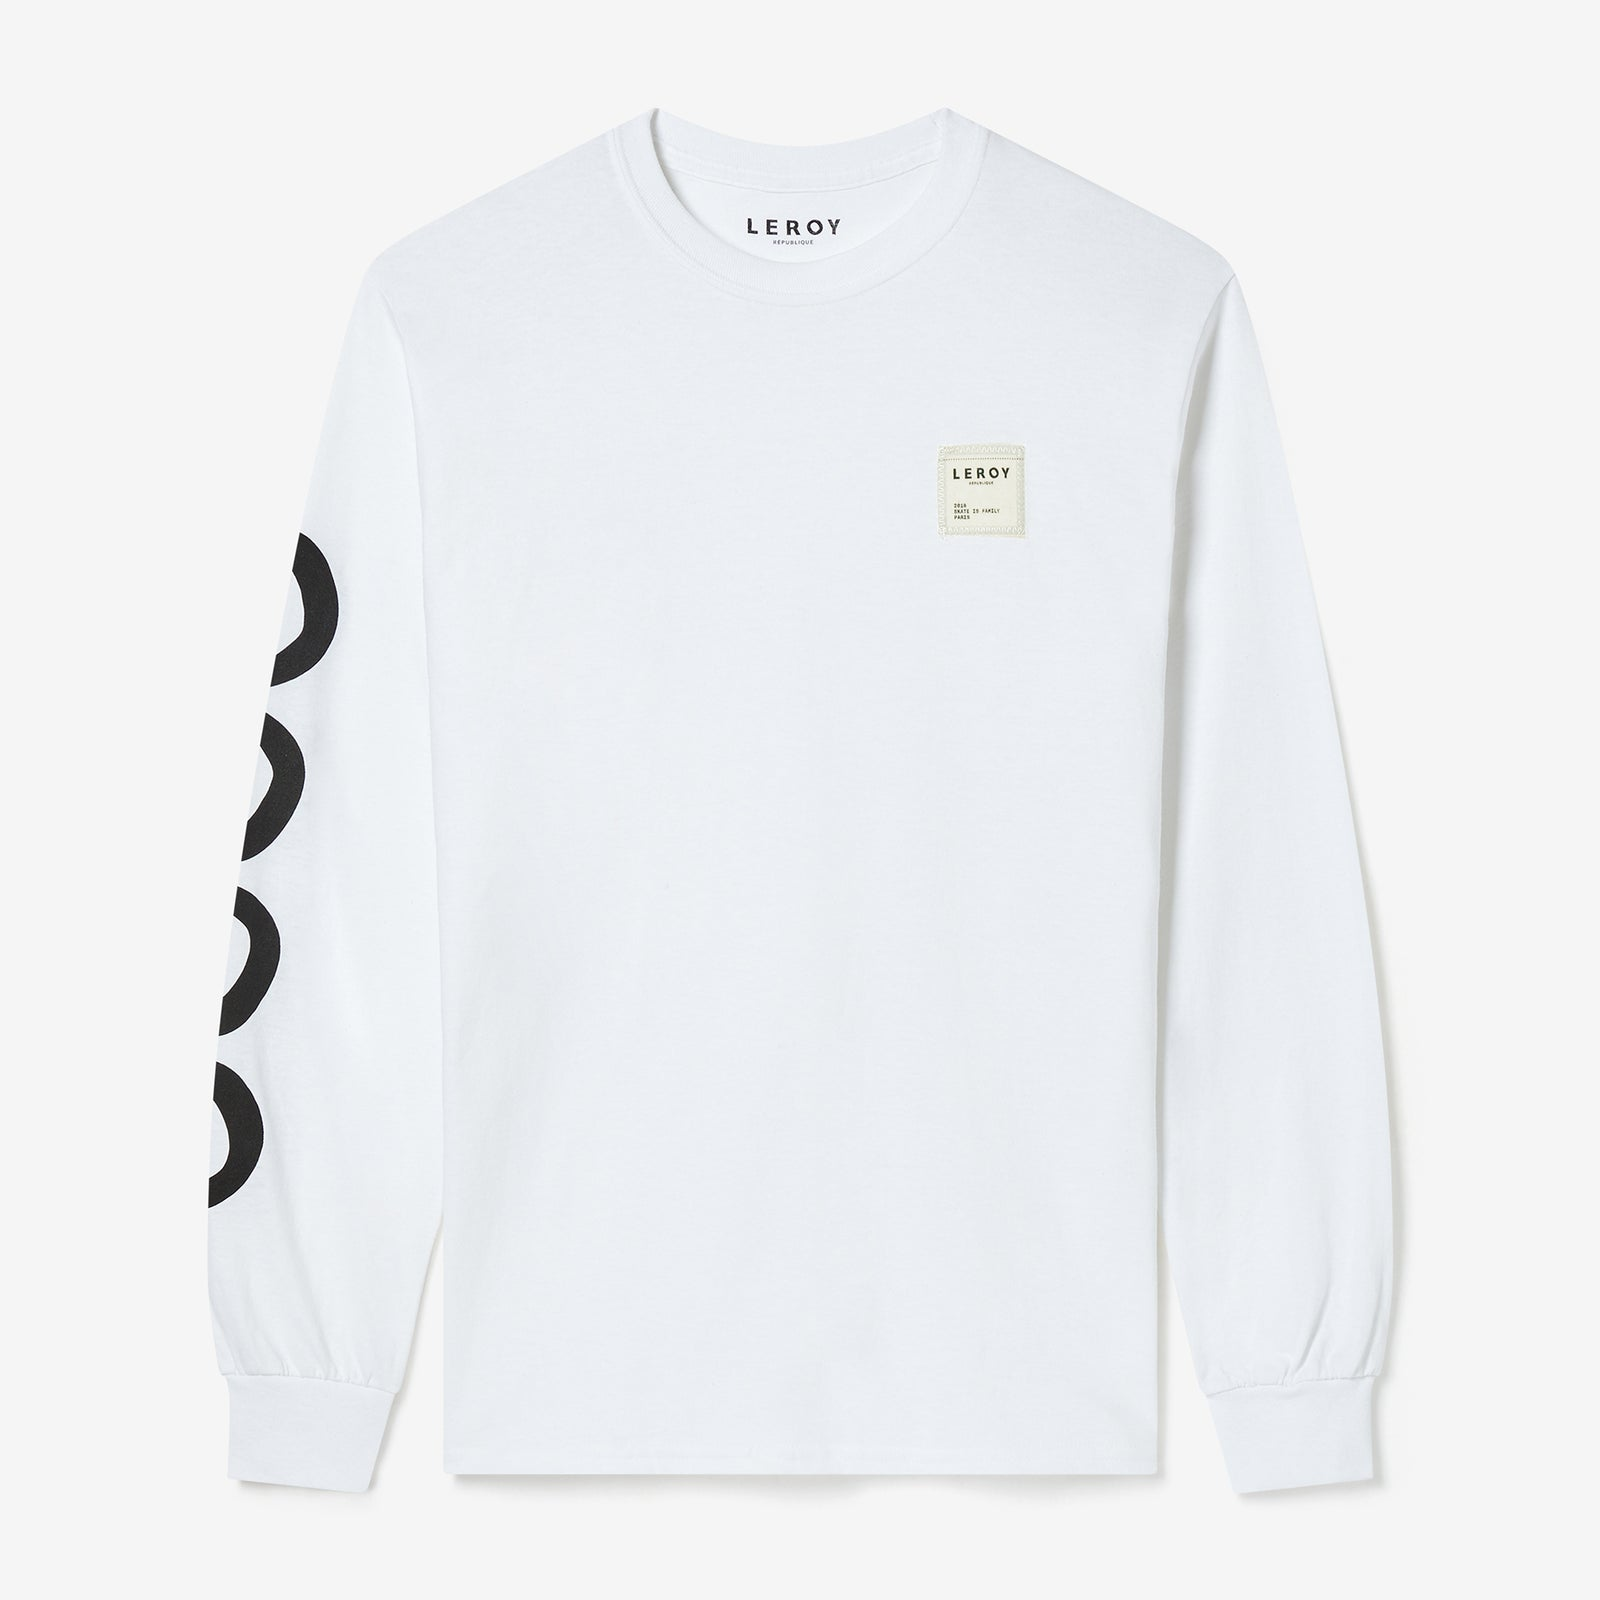 4 wheels long sleeves